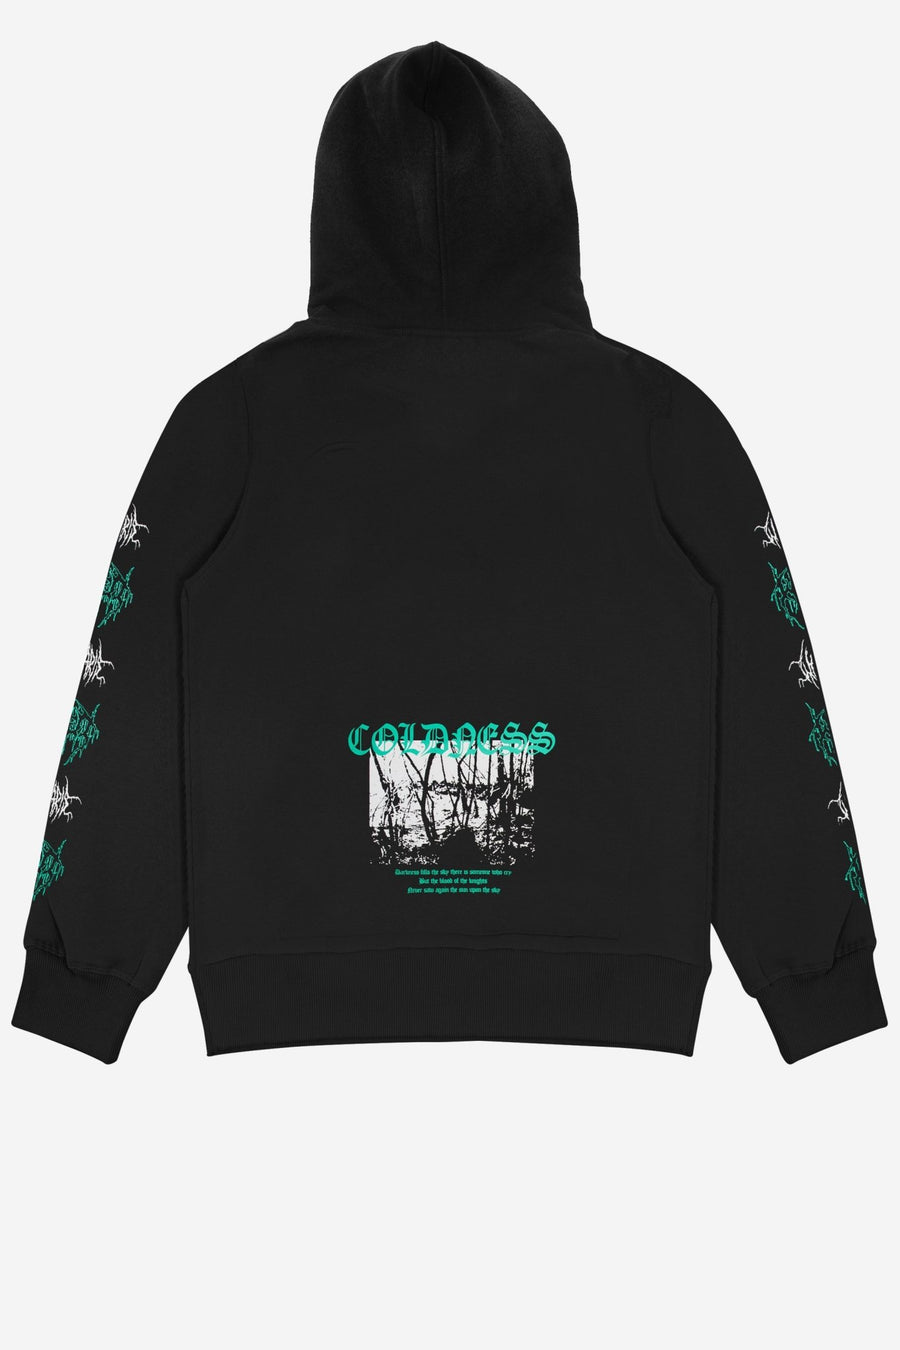 Hoodie Coldness Noir - WASTED PARIS